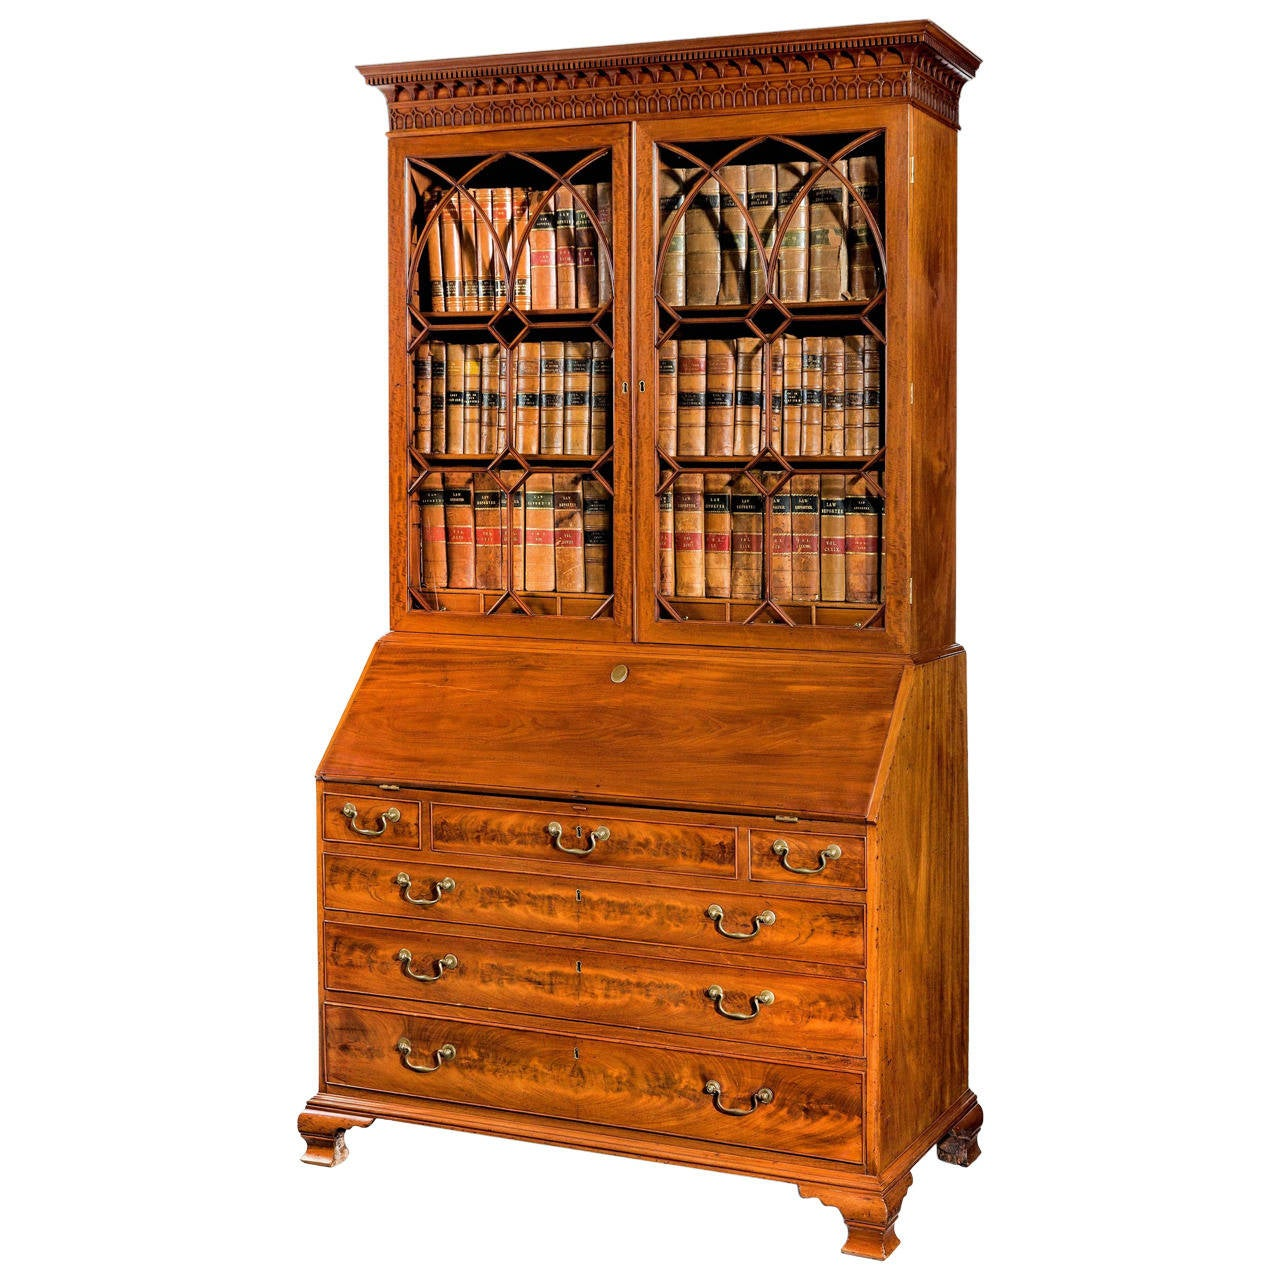 chippendale period mahogany bureau bookcase at 1stdibs. Black Bedroom Furniture Sets. Home Design Ideas